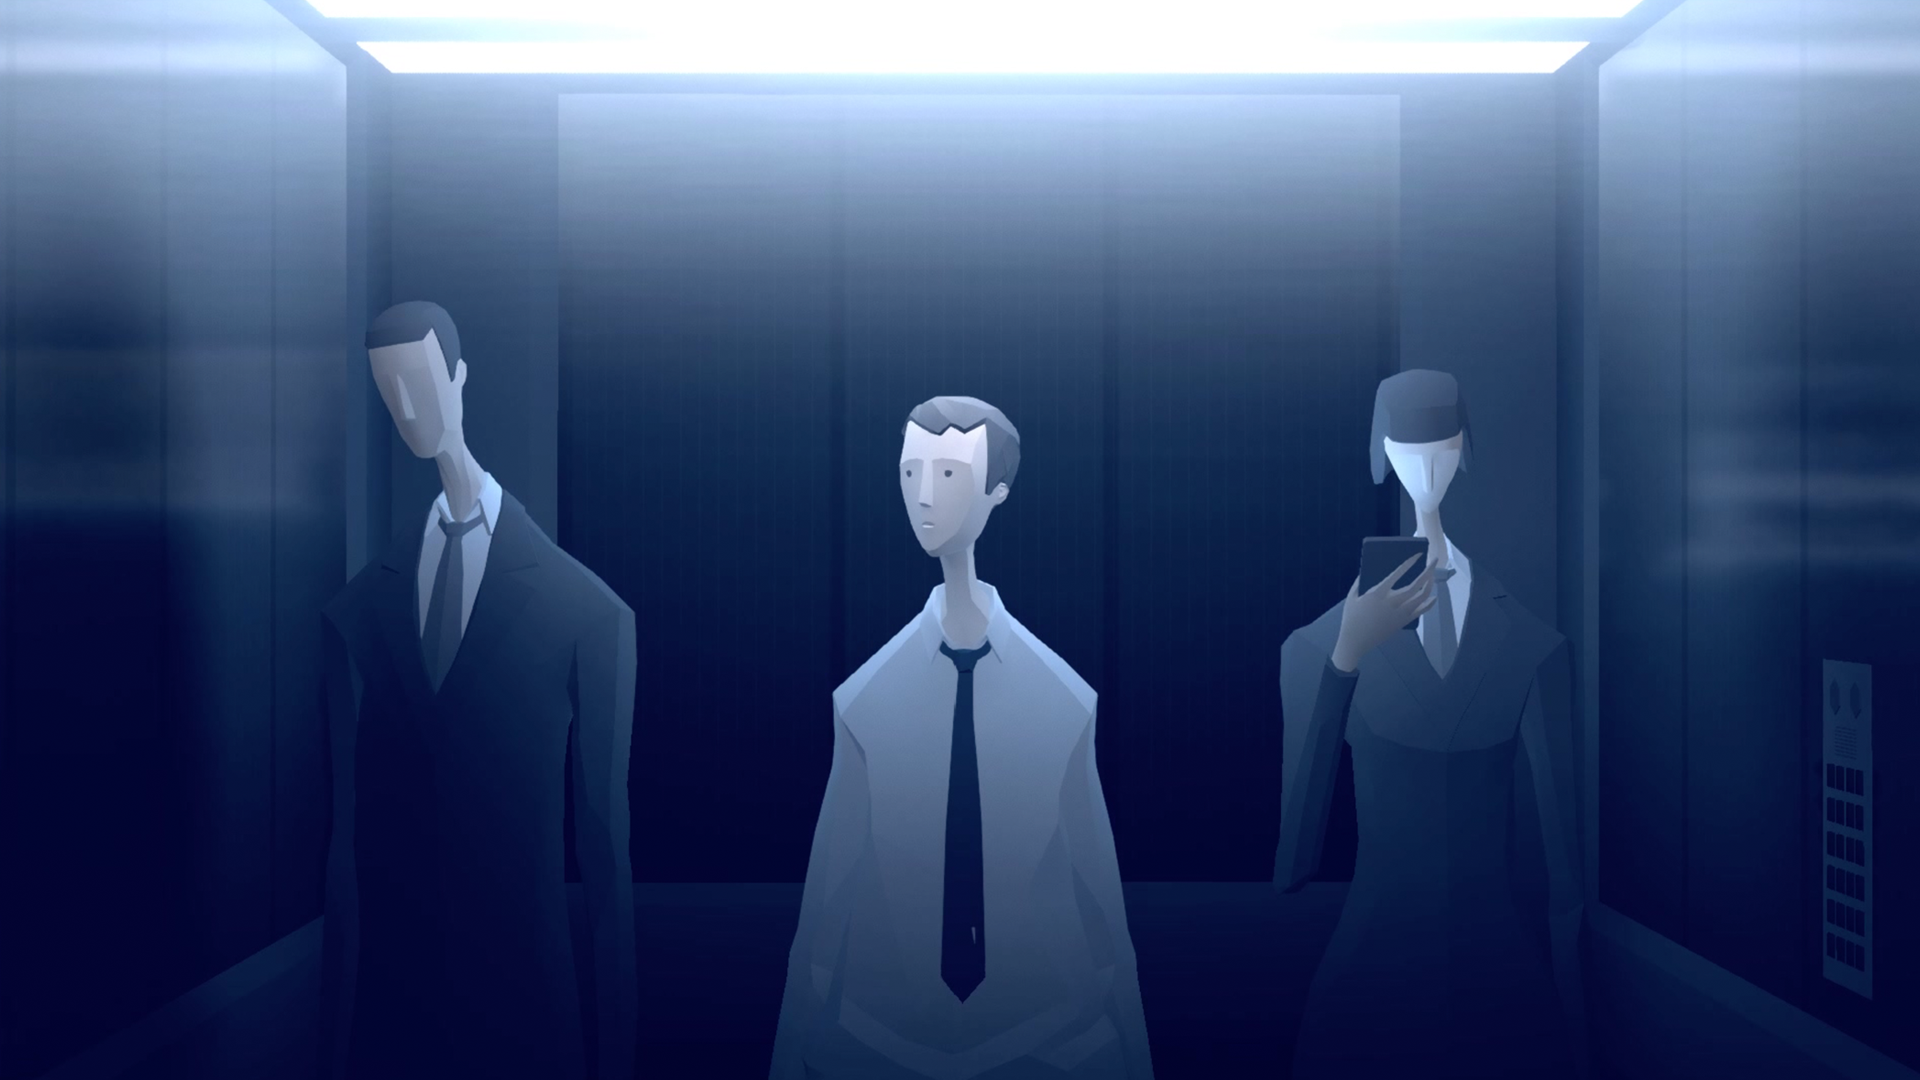 mosiac game characters in an elevator